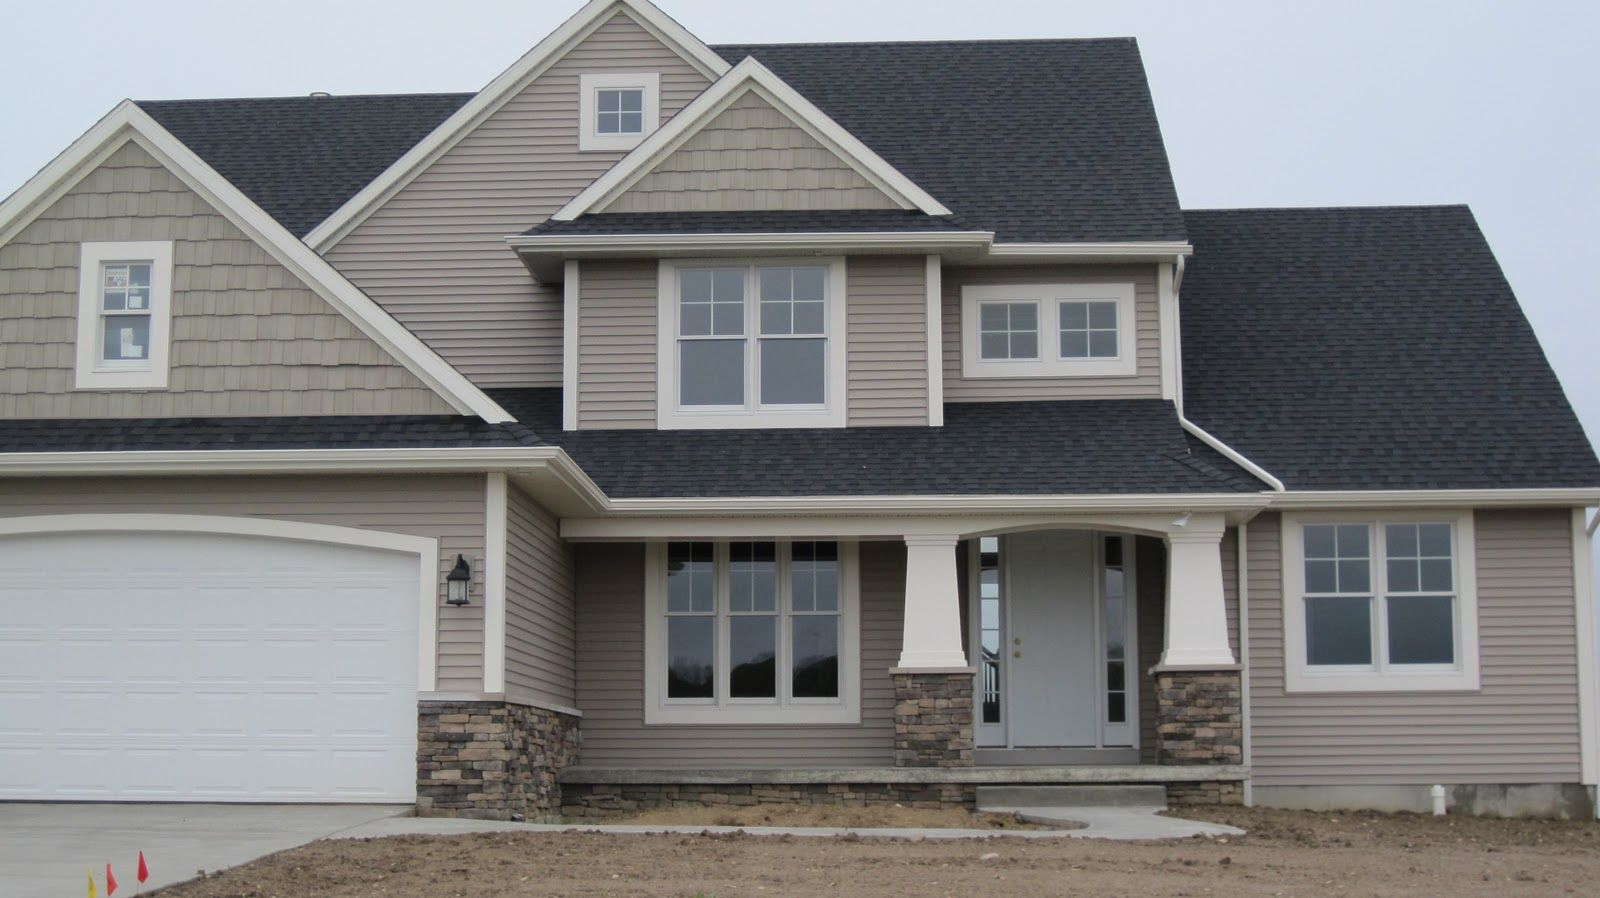 craftsman with stone pillars | to us in a subdivision. This house seems dabble in the Craftsman ...